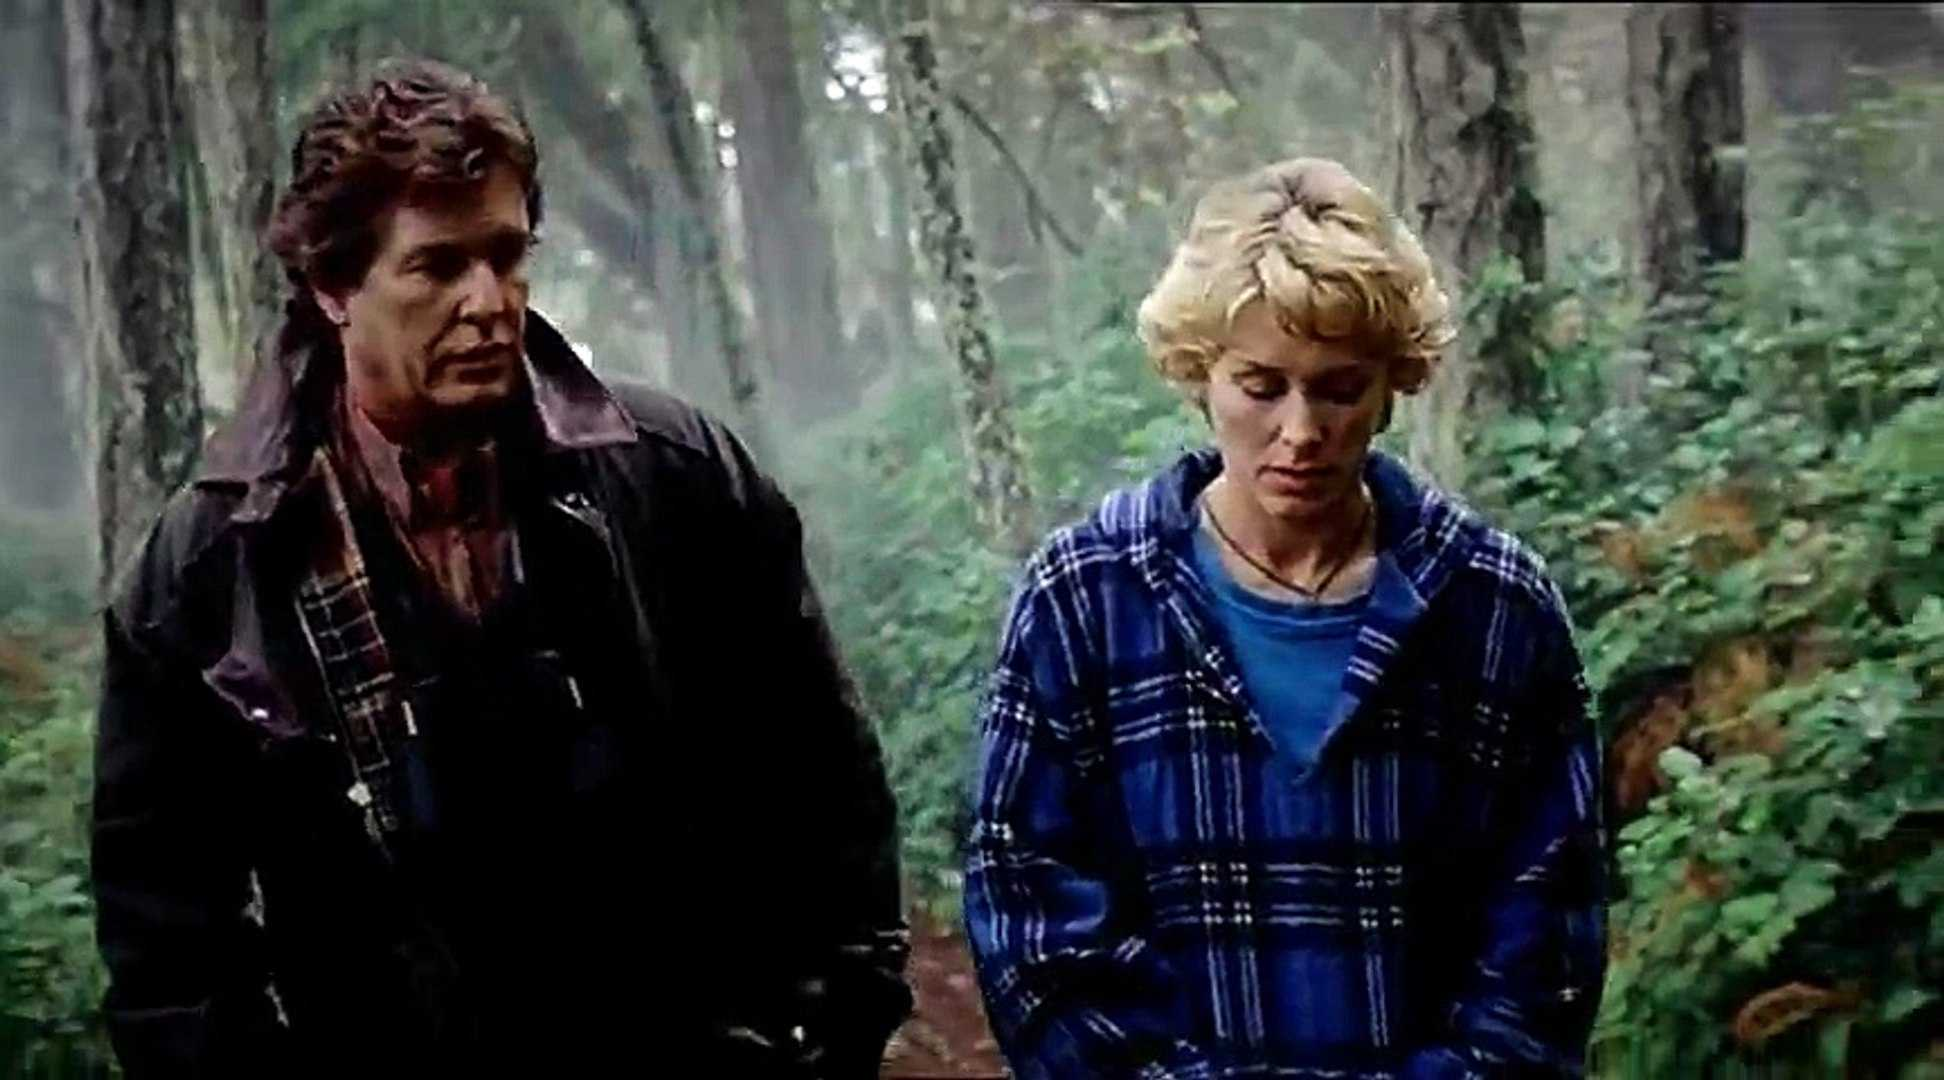 Psychopathic lighthouse keeper Tom Berenger with Rachel Hayward in Watchtower (2001)